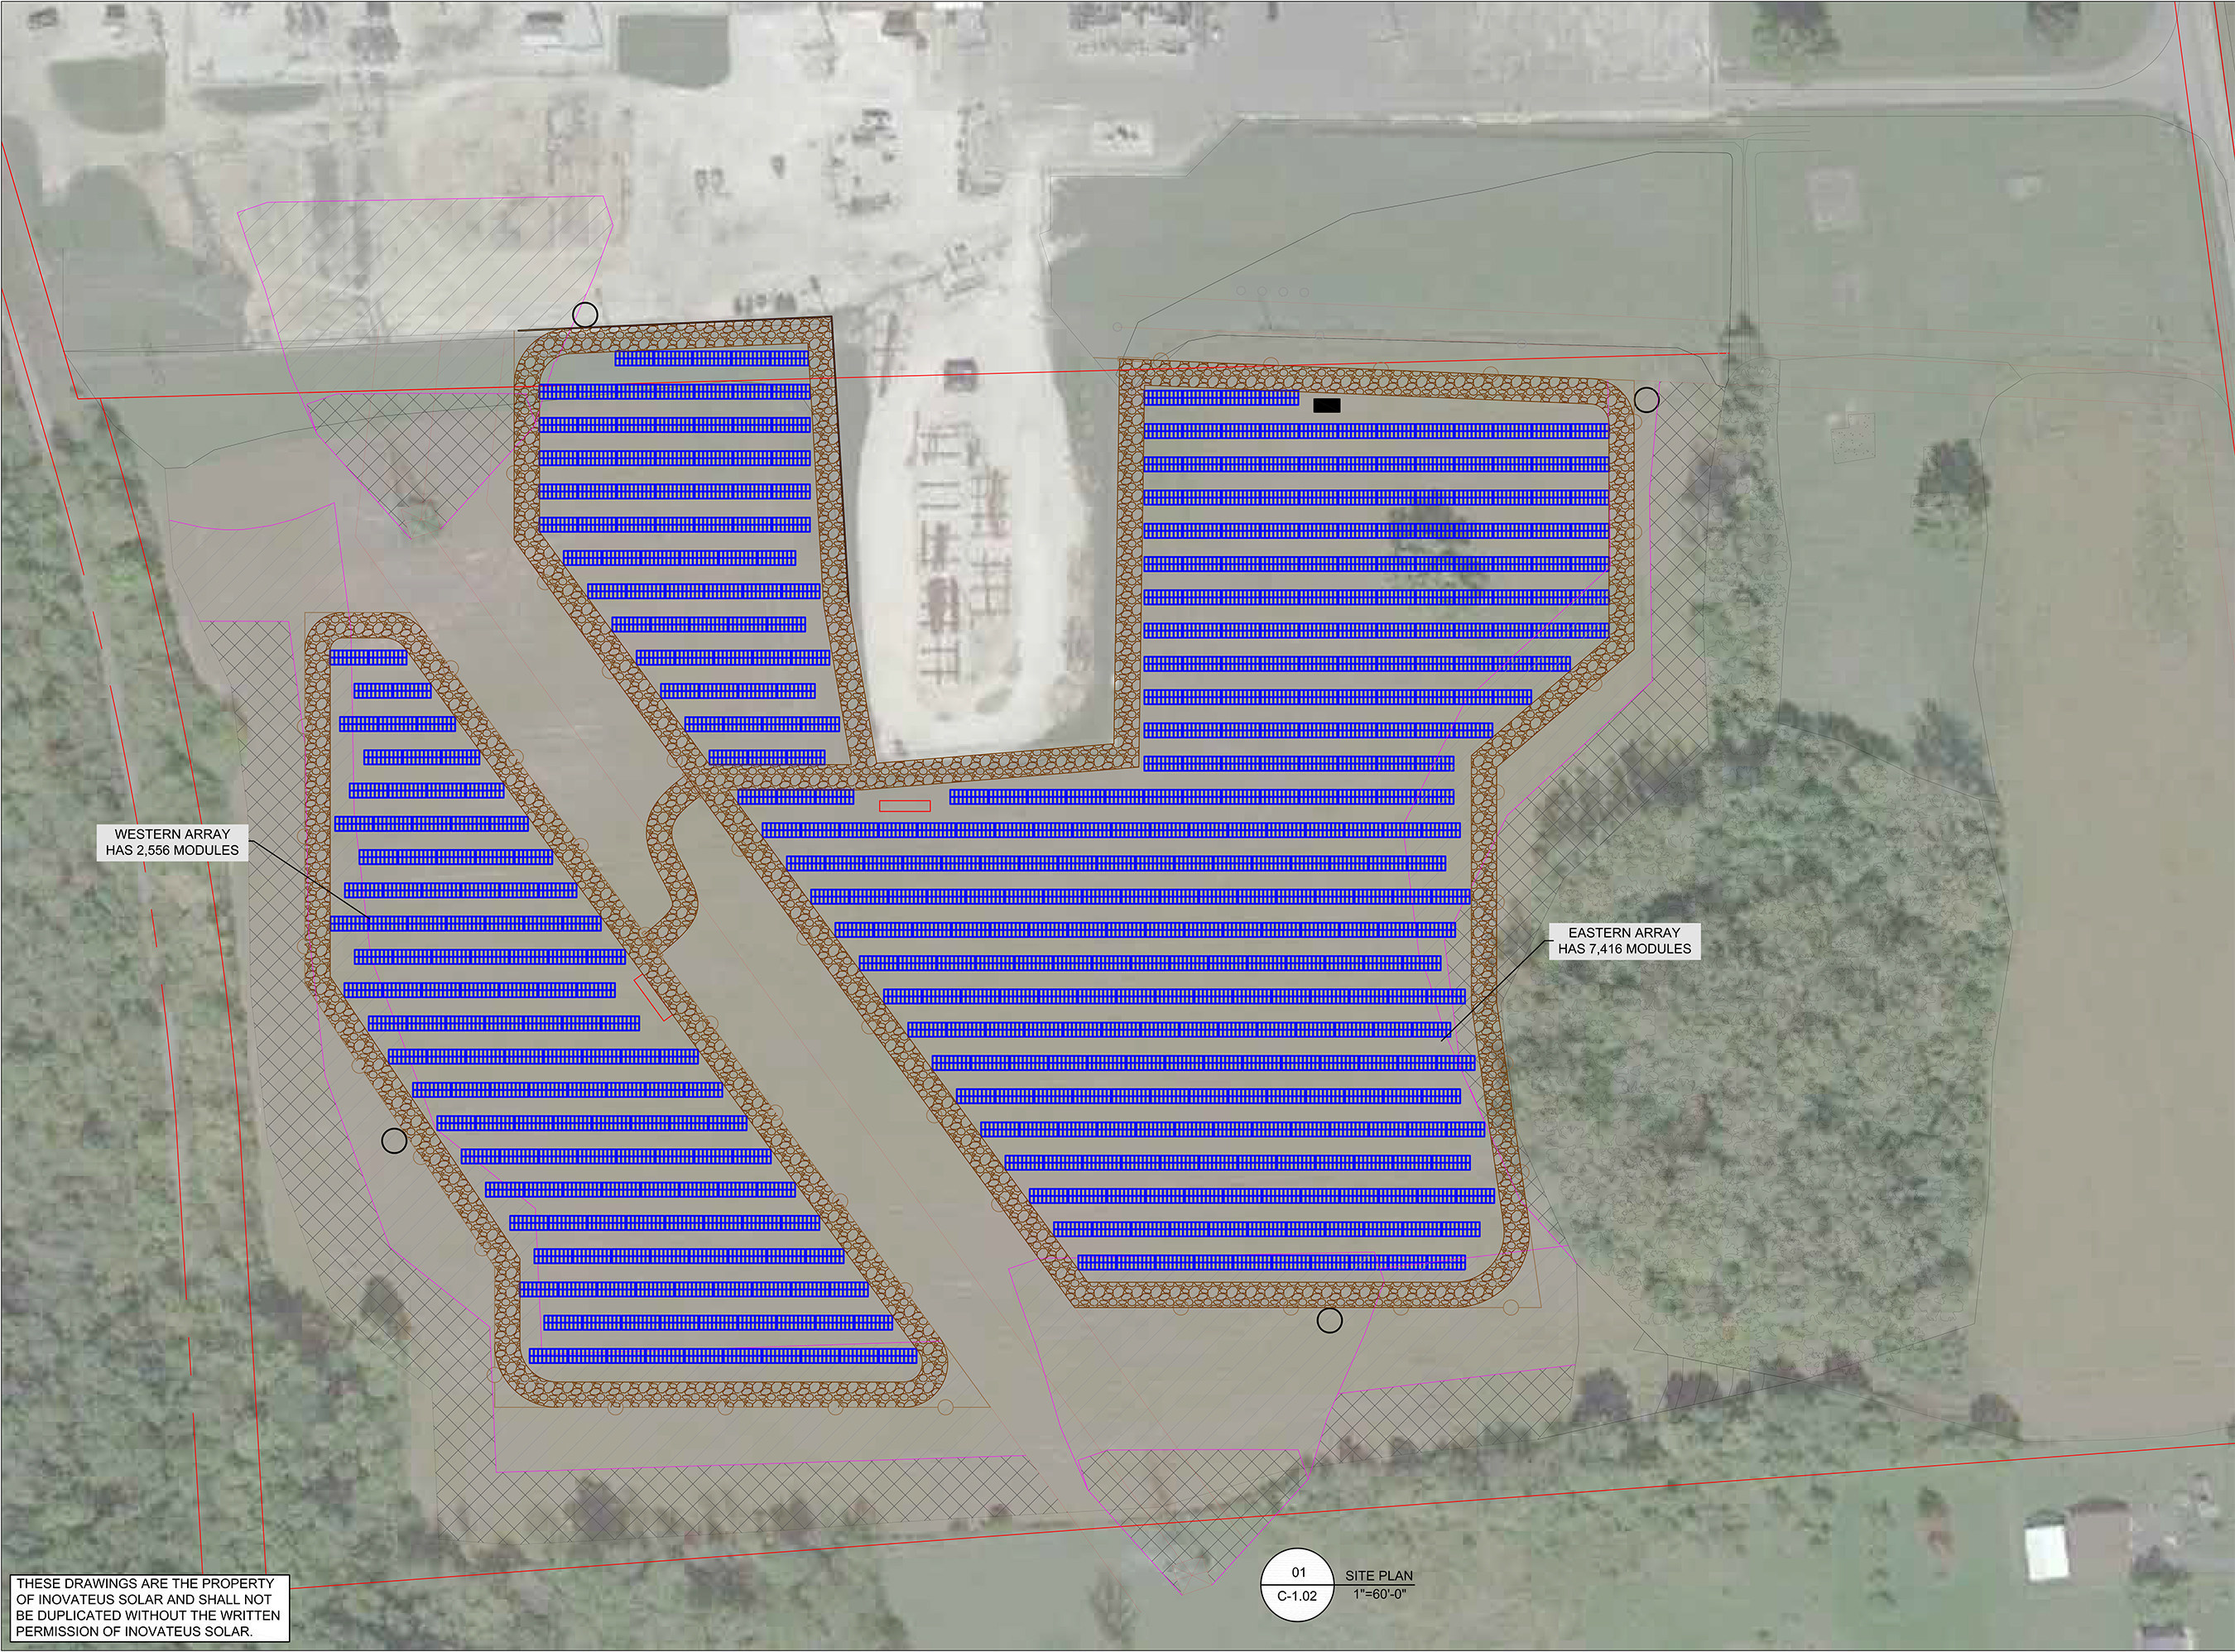 Indiana based Inovateus Solar is awarded the installation of a 2.5-megawatt AC, ground-mounted solar array project for Indiana Michigan Power (I&M) an operating unit of American Electric Power (AEP). The future site of the new I&M solar array is in Marion, Indiana, adjacent to the company's Deer Creek substation.